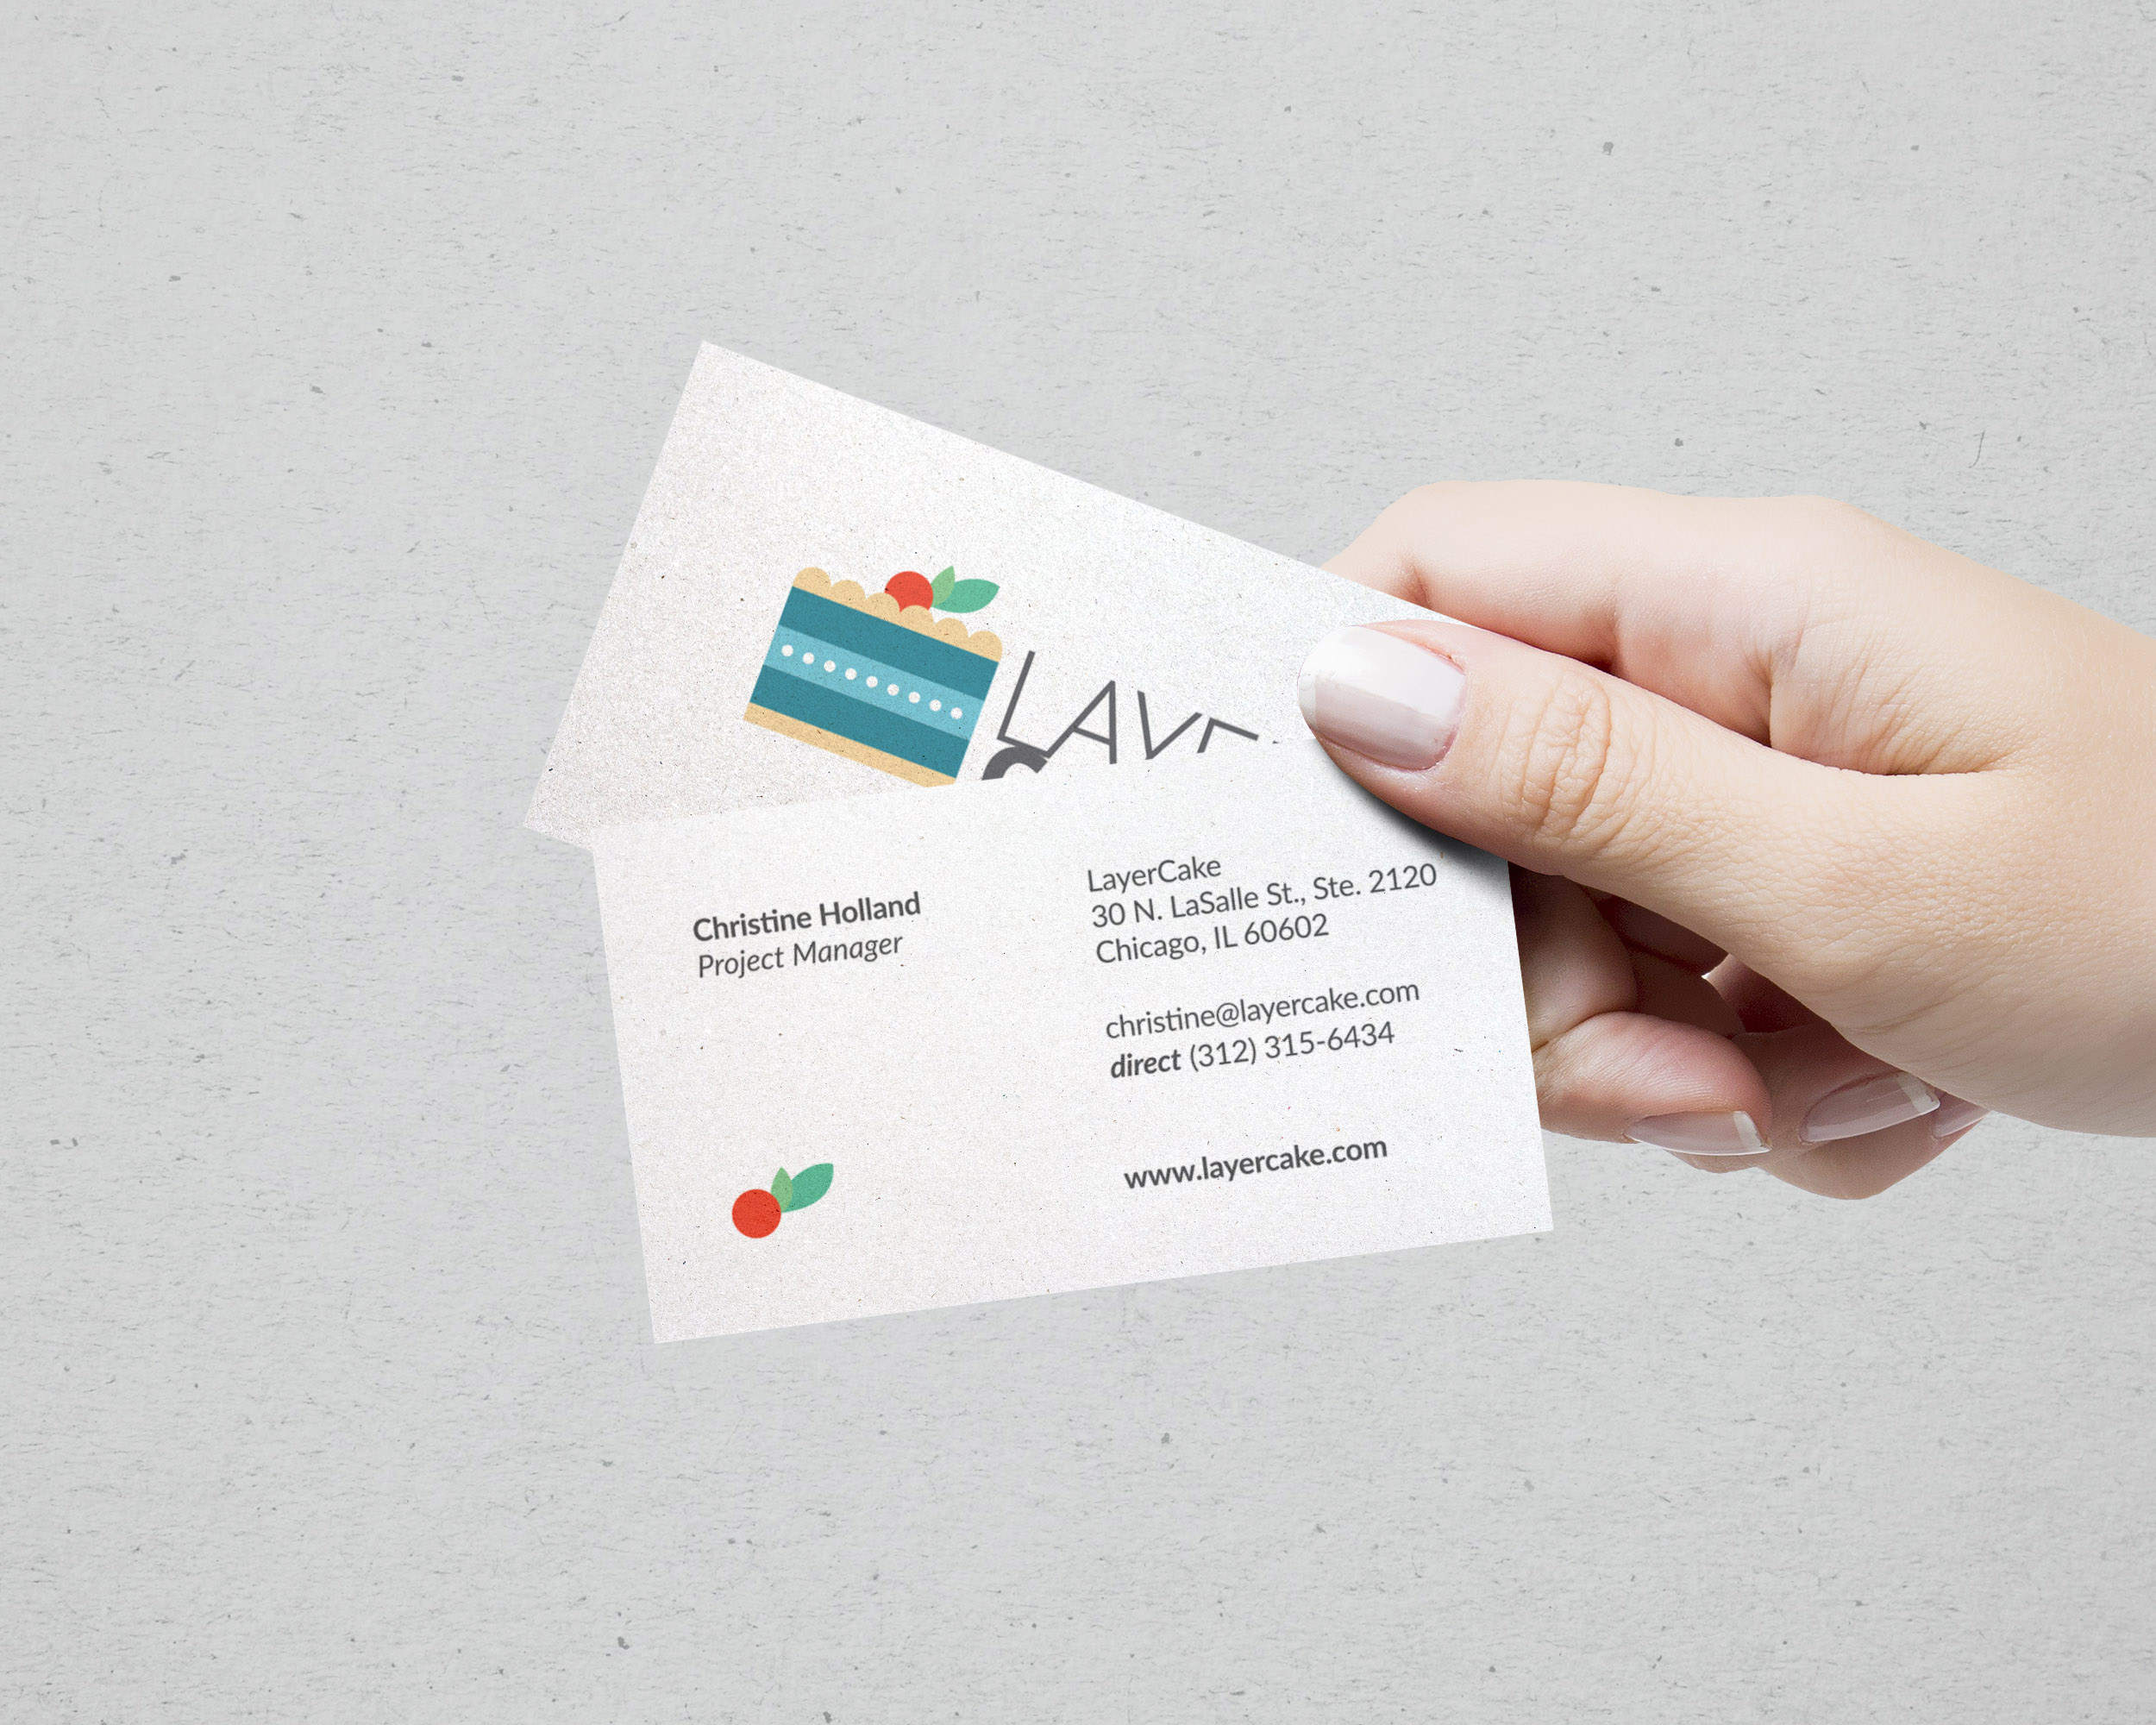 Business Card Hand_LayerCake-BizCard-2.jpg